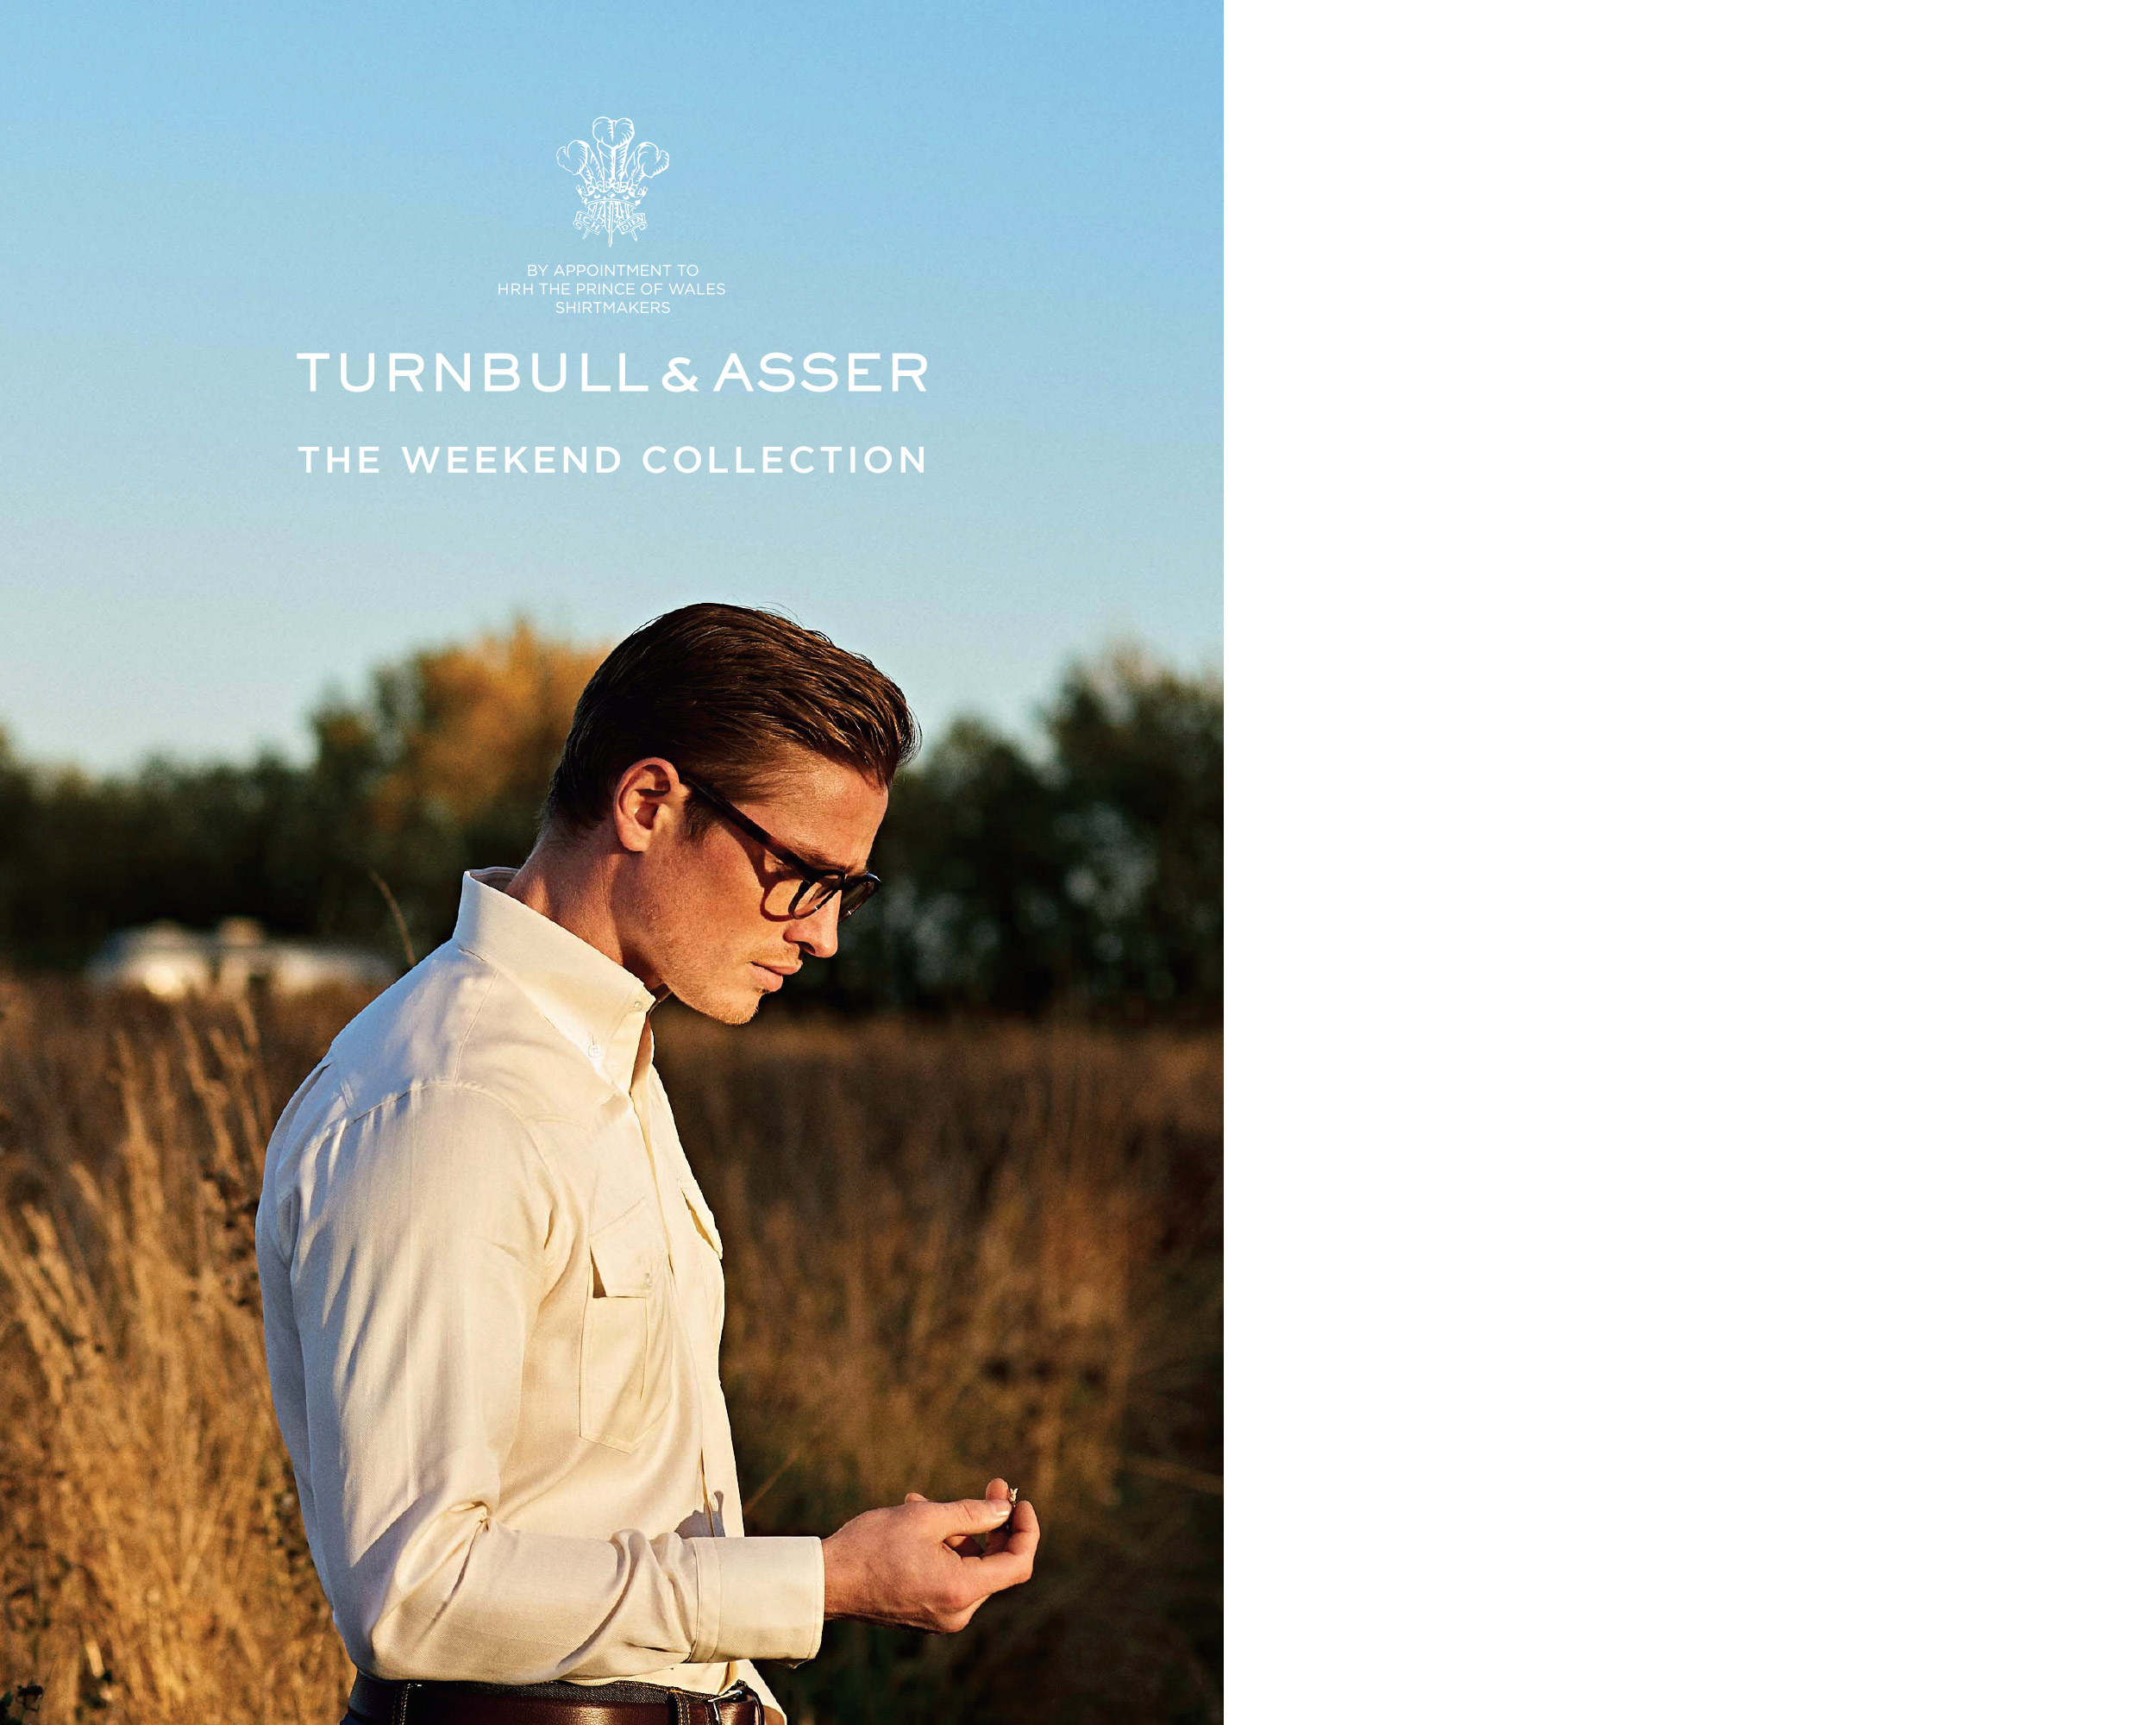 Turnbull & Asser, Weekend Collection Campaign